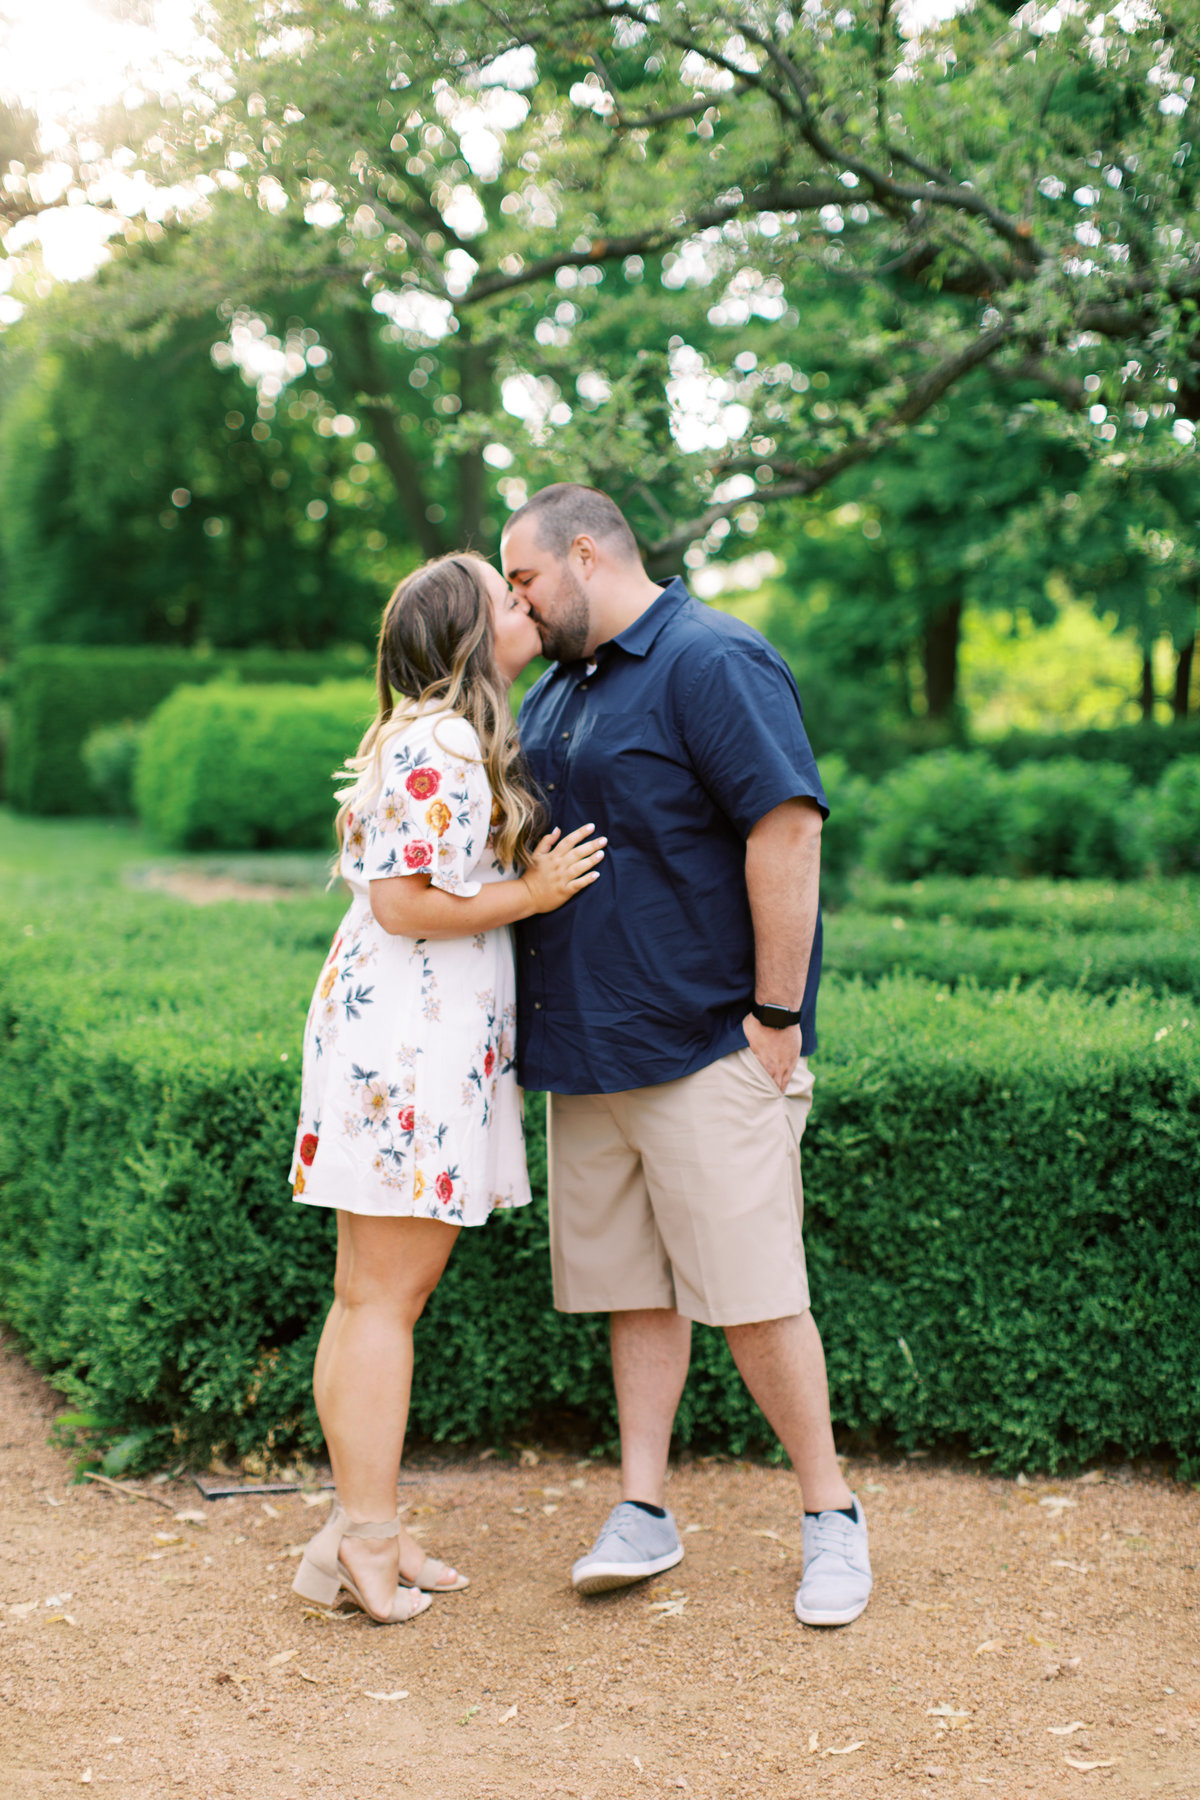 LizAndy_Engagement_June112019_02